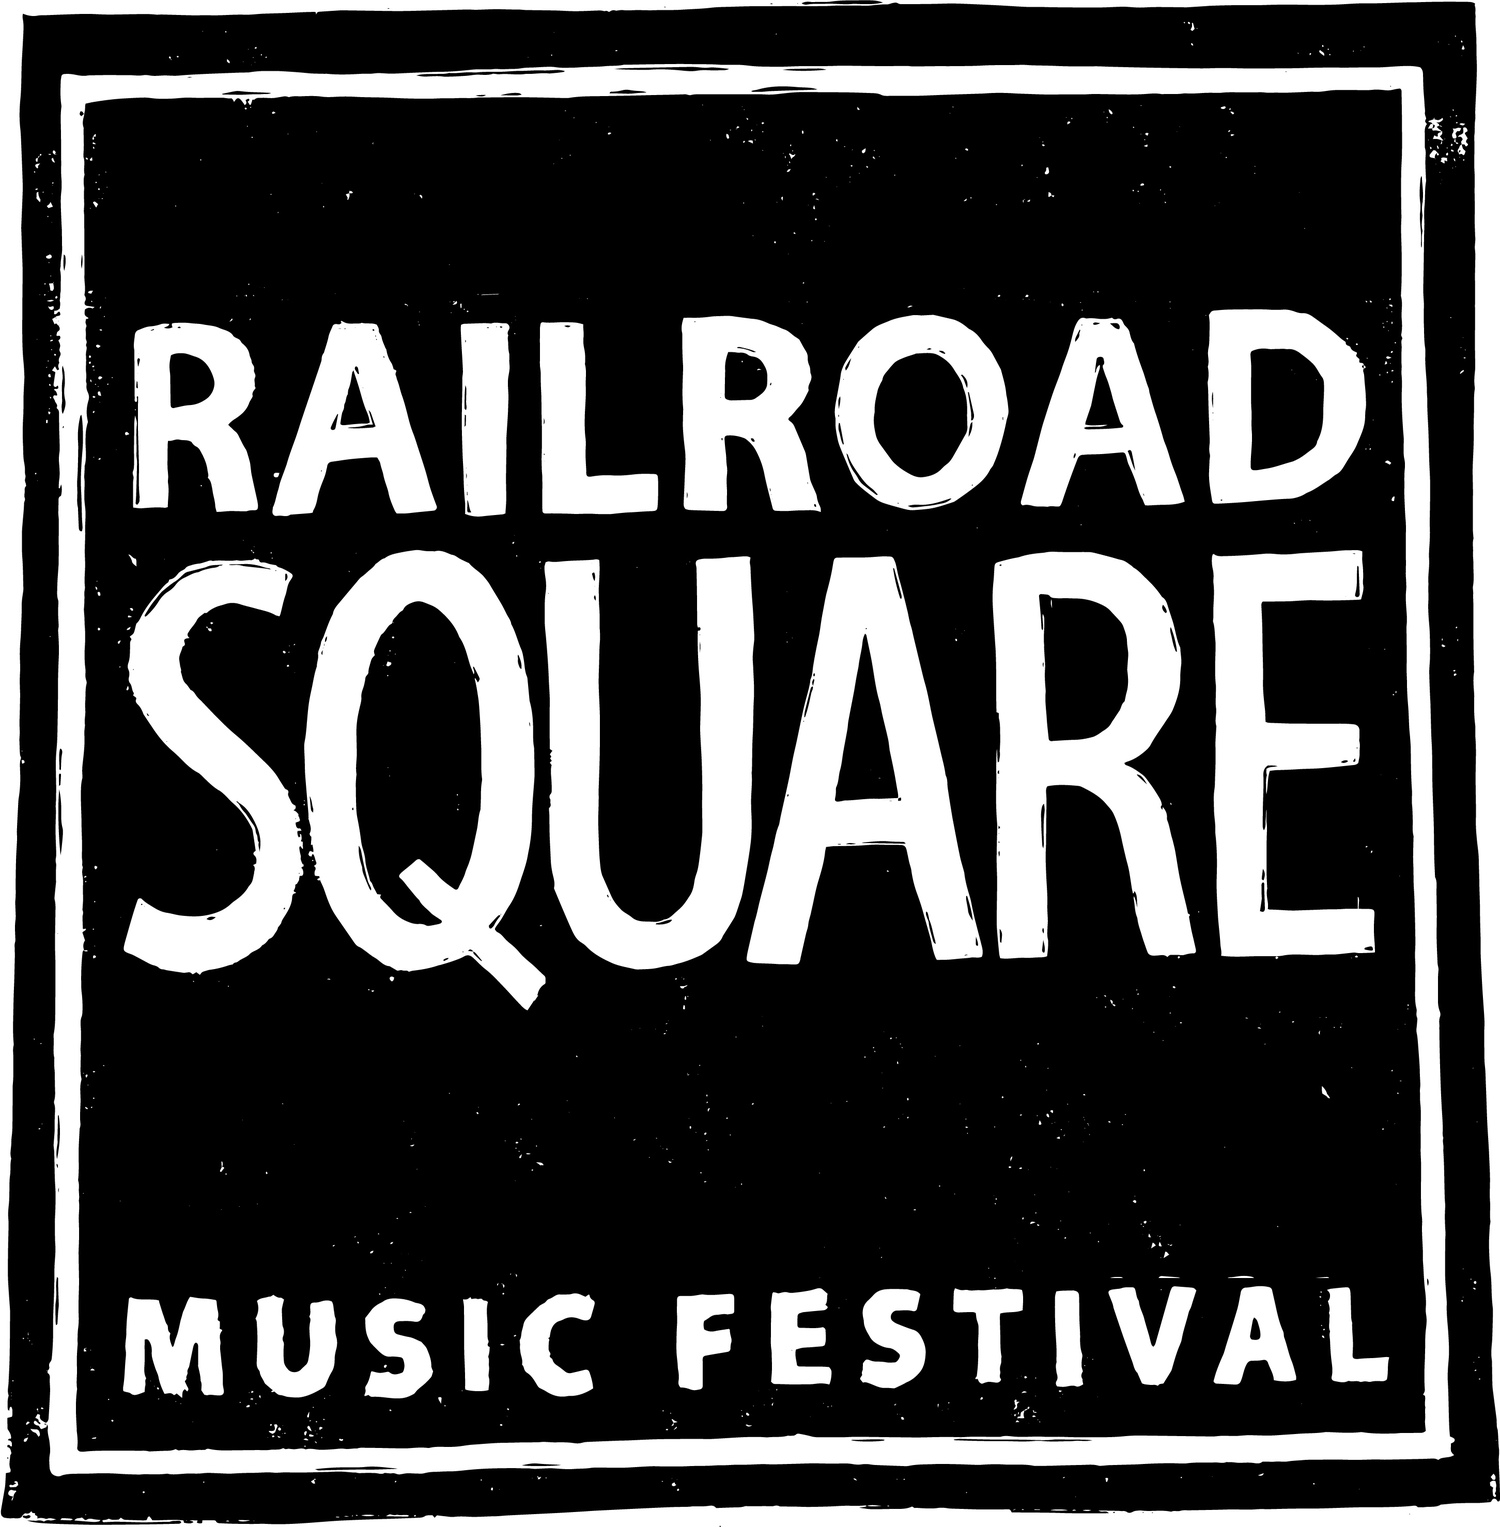 Railroad Square Music Festival